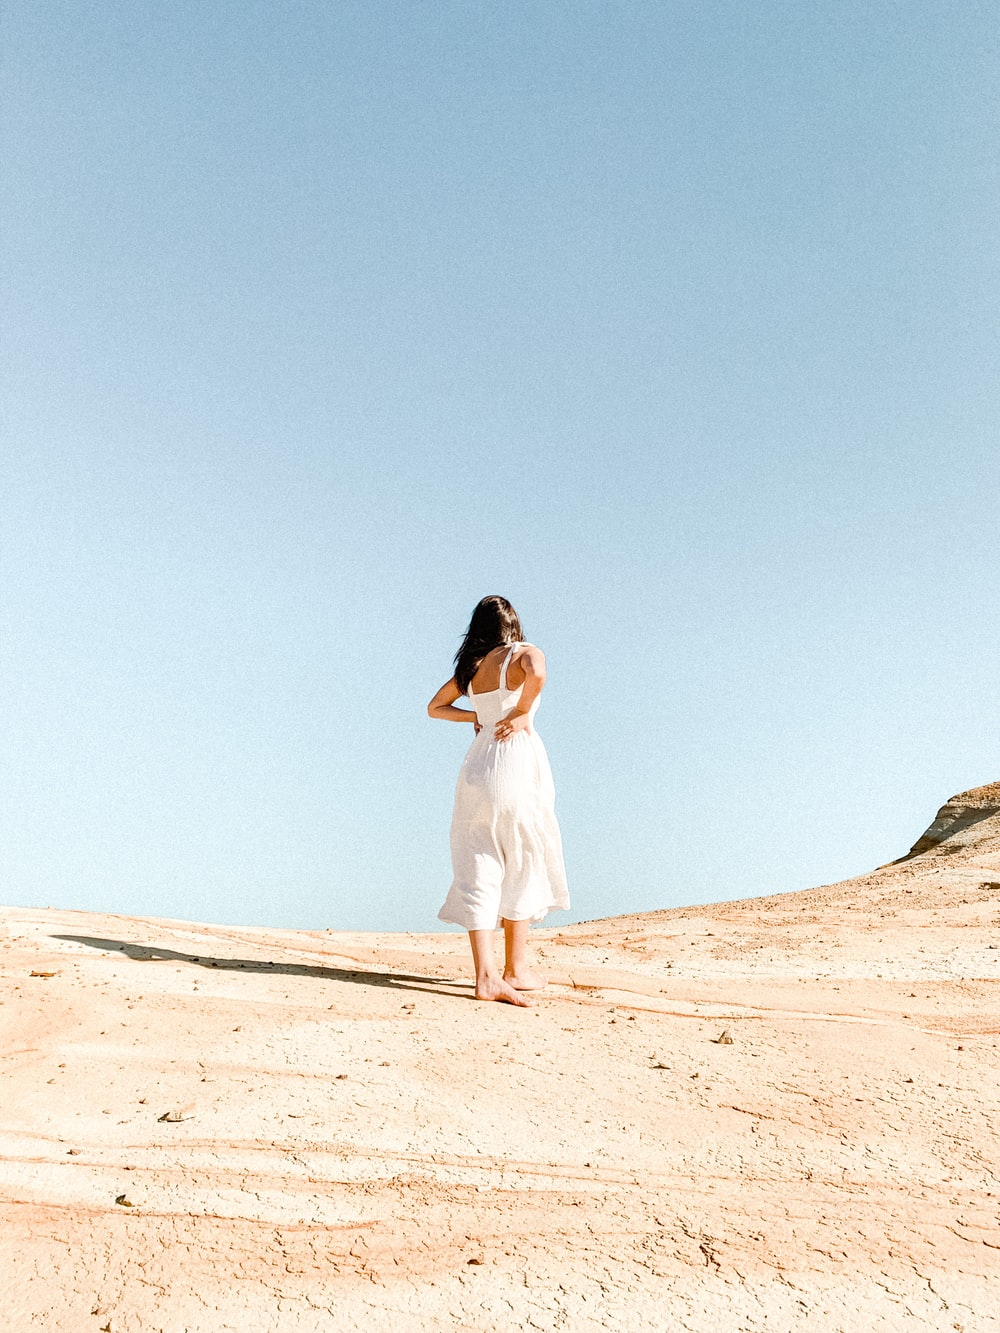 woman in white dress standing on brown sand during daytime